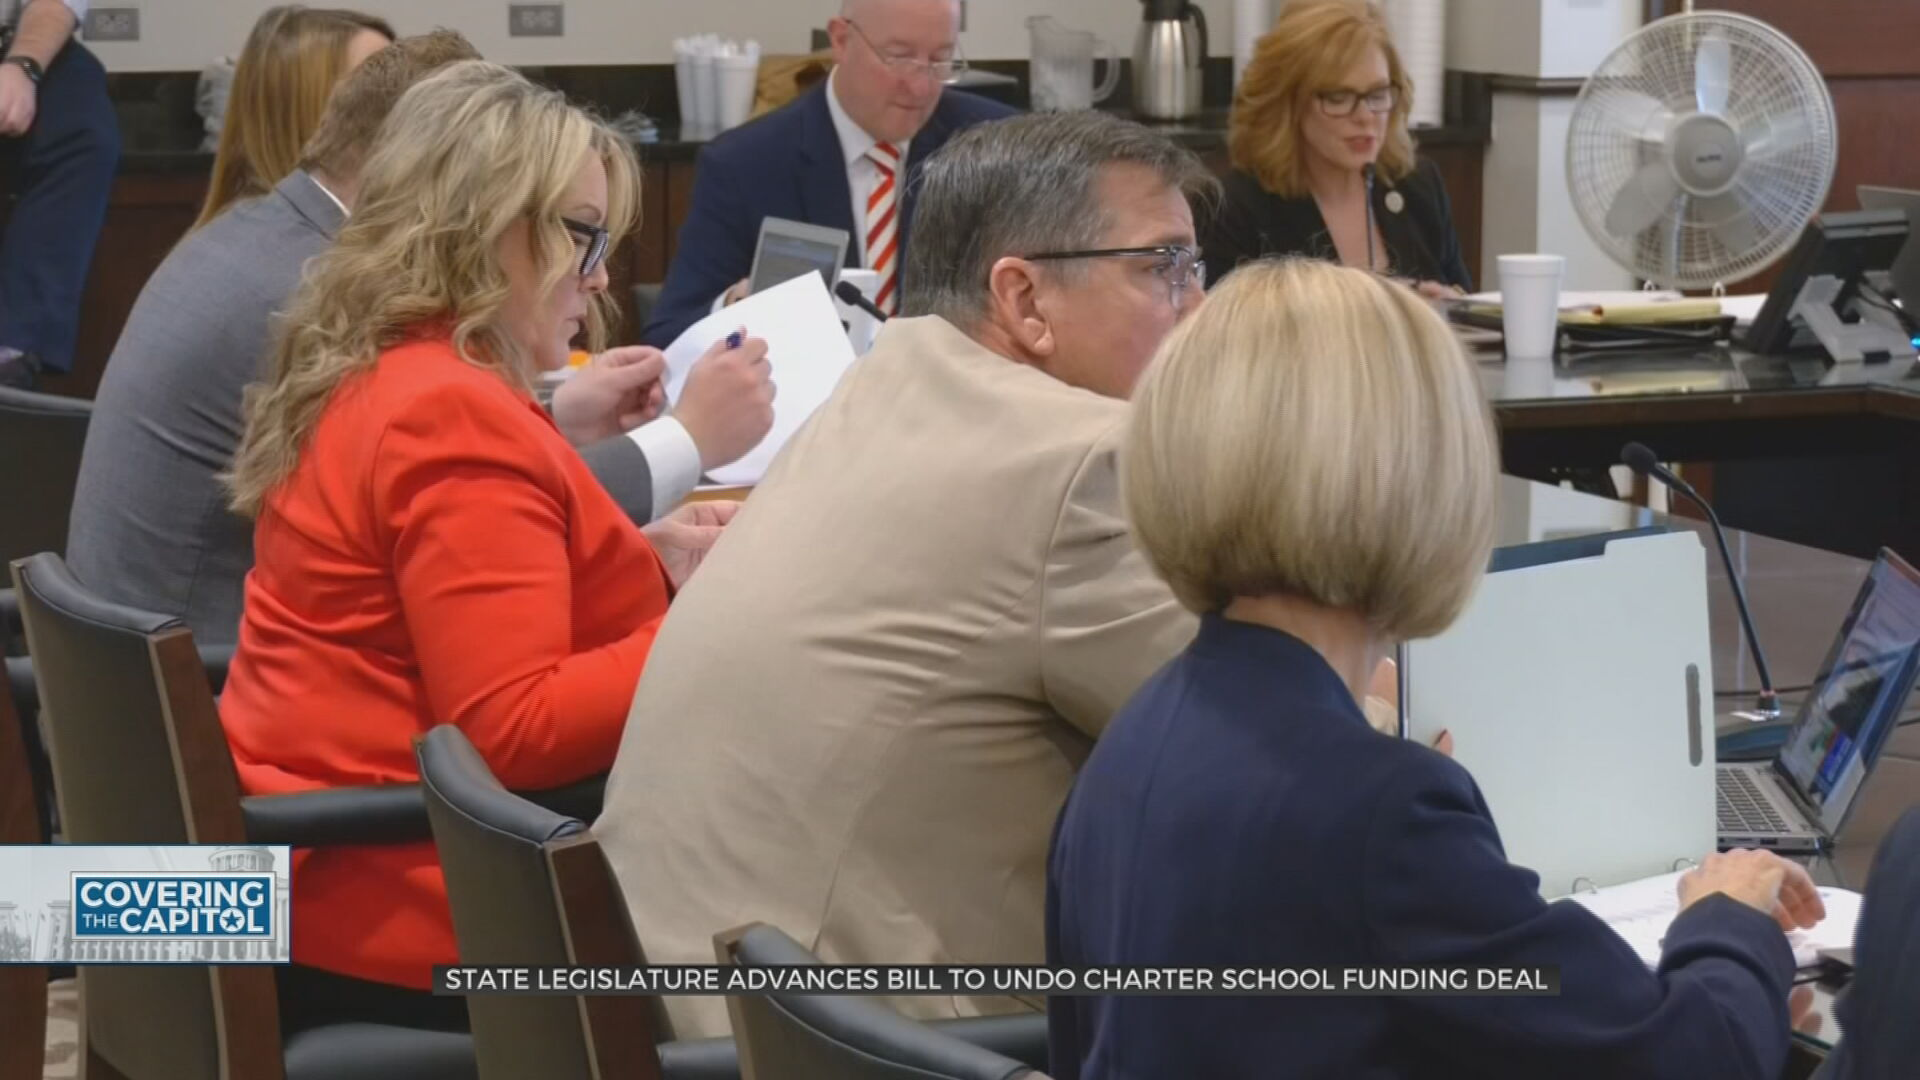 'No Charters Will Get Local Dollars': Bill Seeks To Reverse Charter School Settlement